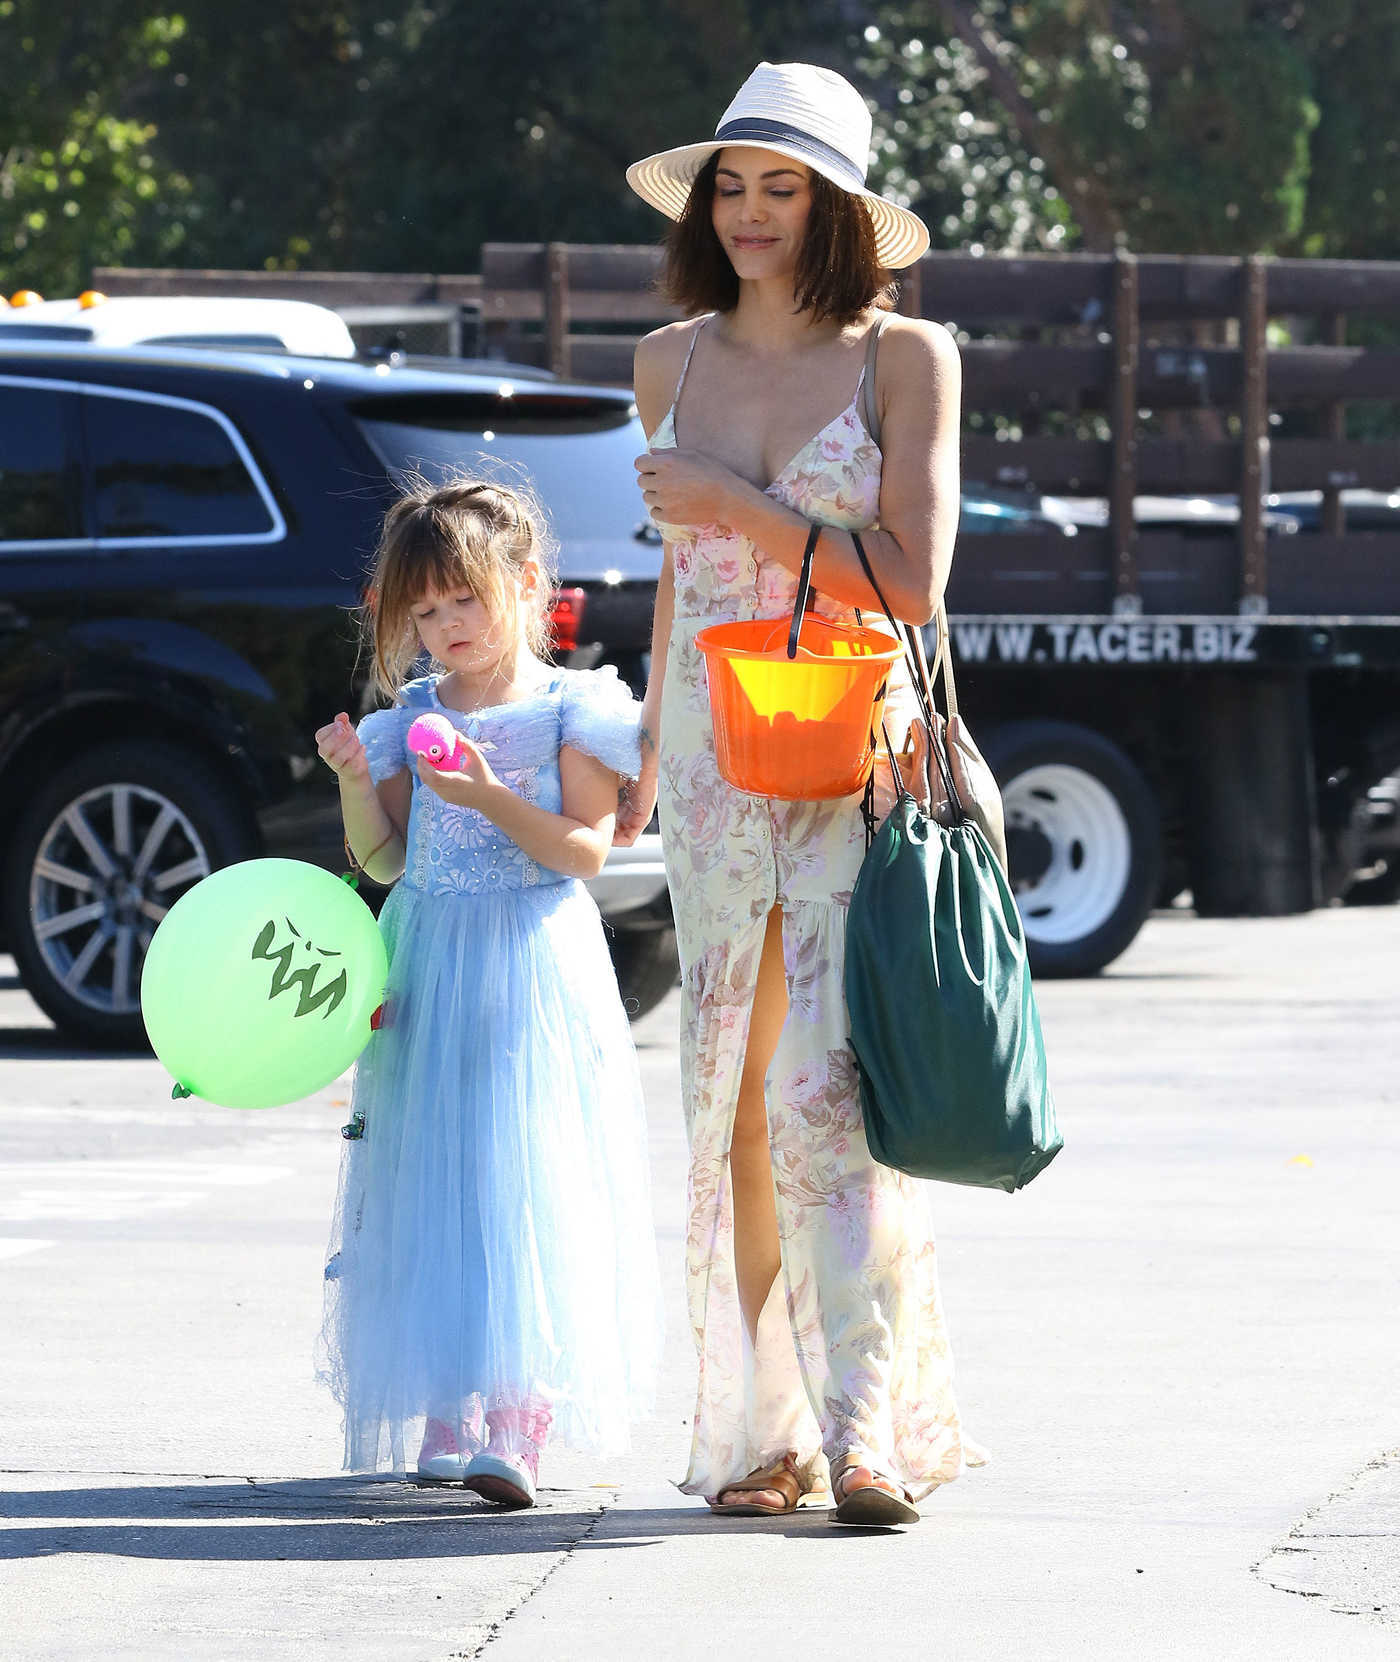 Jenna Dewan Out with Her Daughter Arrives at a Halloween Party in Studio City 10/27/2018